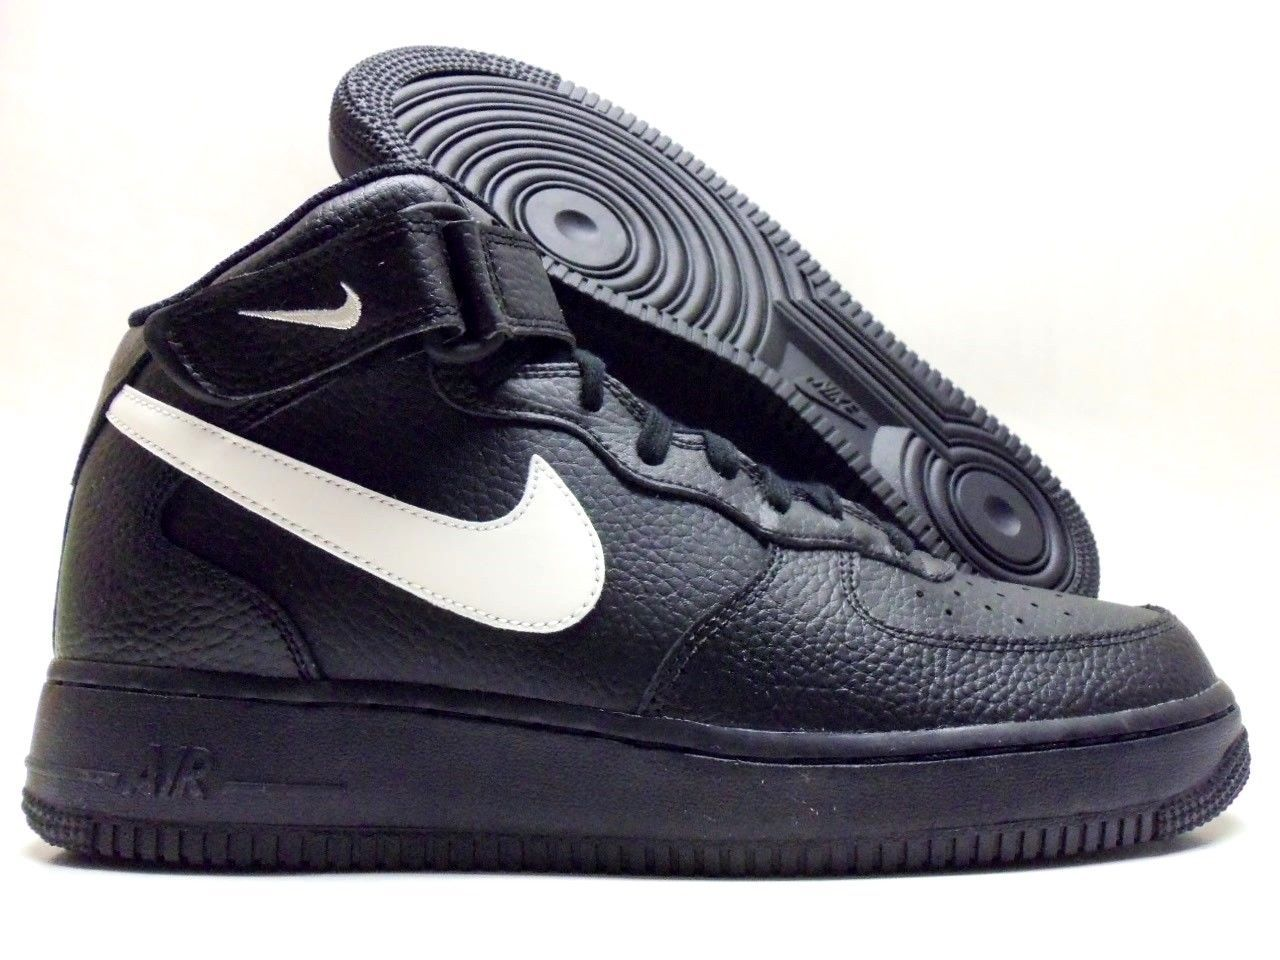 purchase cheap bef7c f0fab NIKE AIR FORCE 1 MID 07 BLACK SAIL WHITE 315123 043  airmaxalways   soletoday